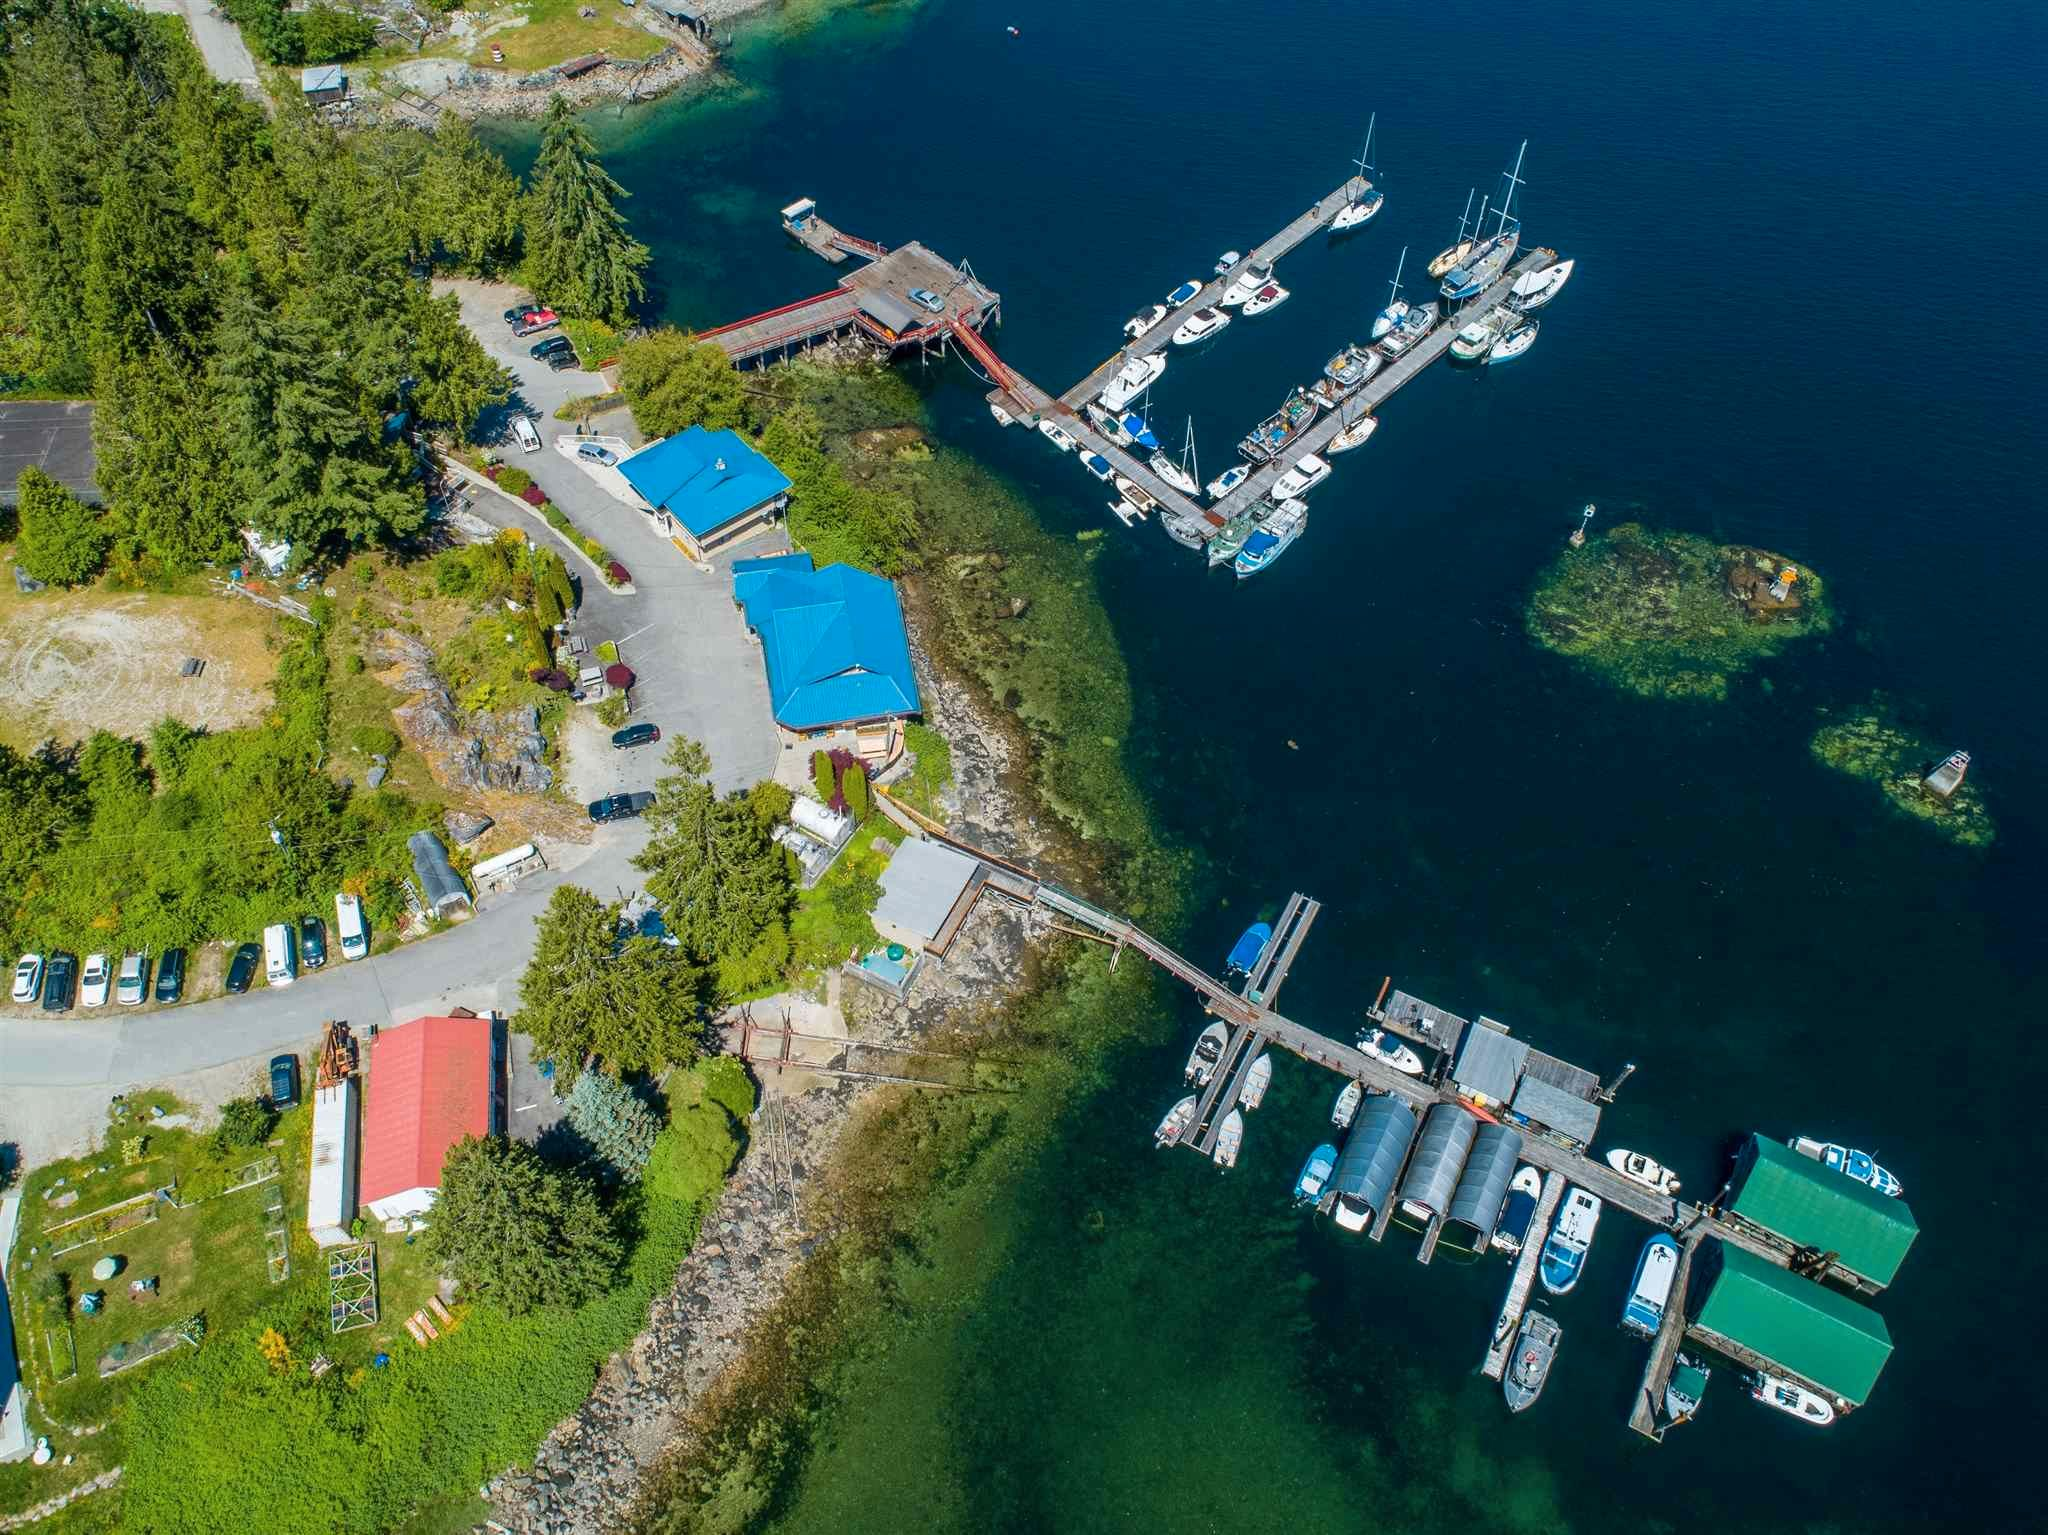 Main Photo: 6781 BATHGATE Road in Egmont: Pender Harbour Egmont Business with Property for sale (Sunshine Coast)  : MLS®# C8038912